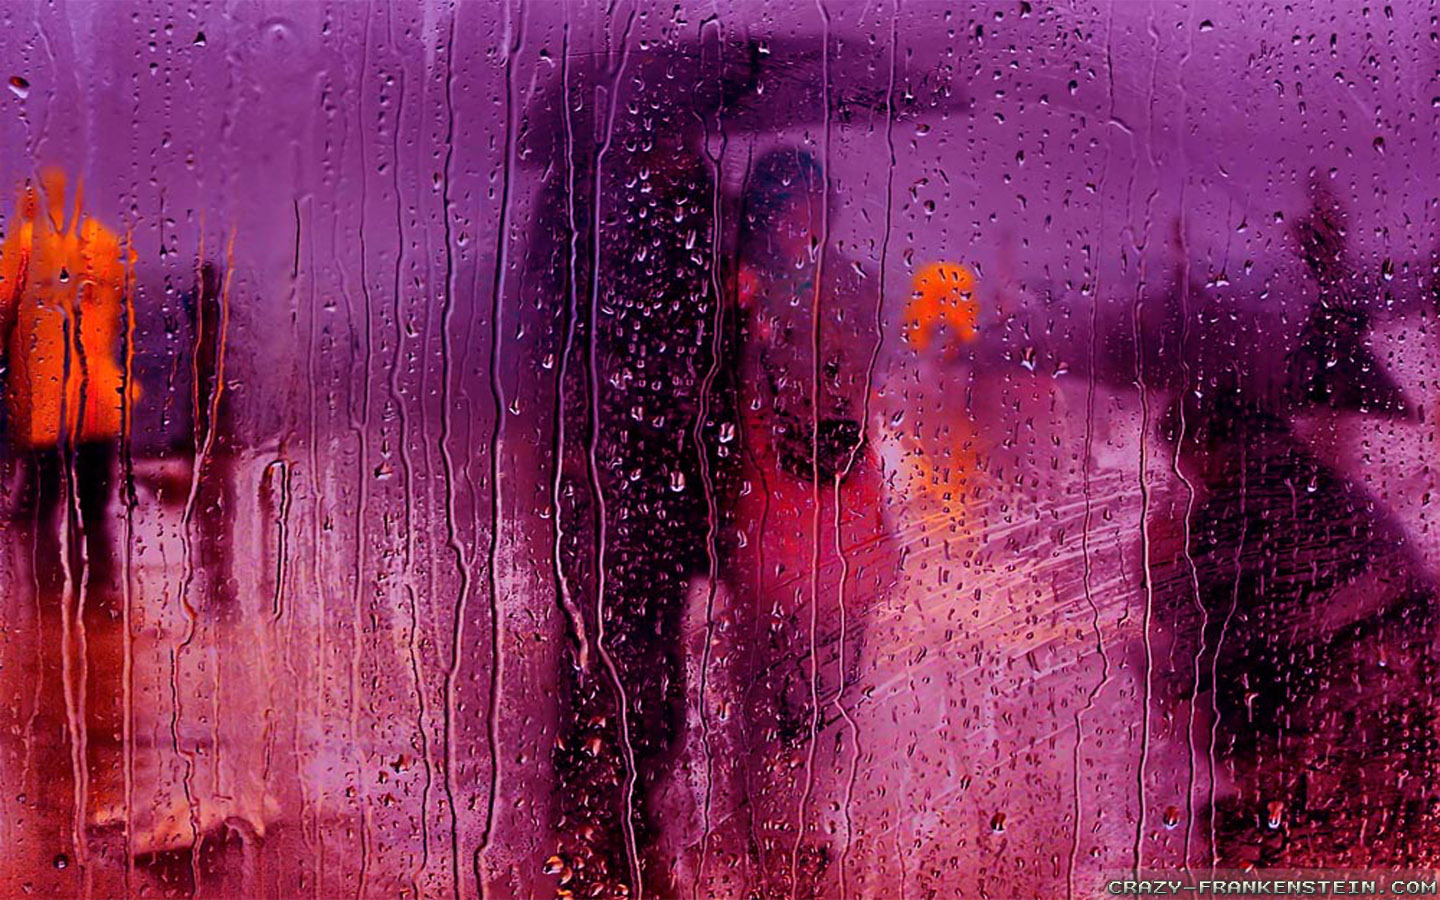 True Love Hd Wallpapers With Quotes Love Rain Wallpapers Crazy Frankenstein